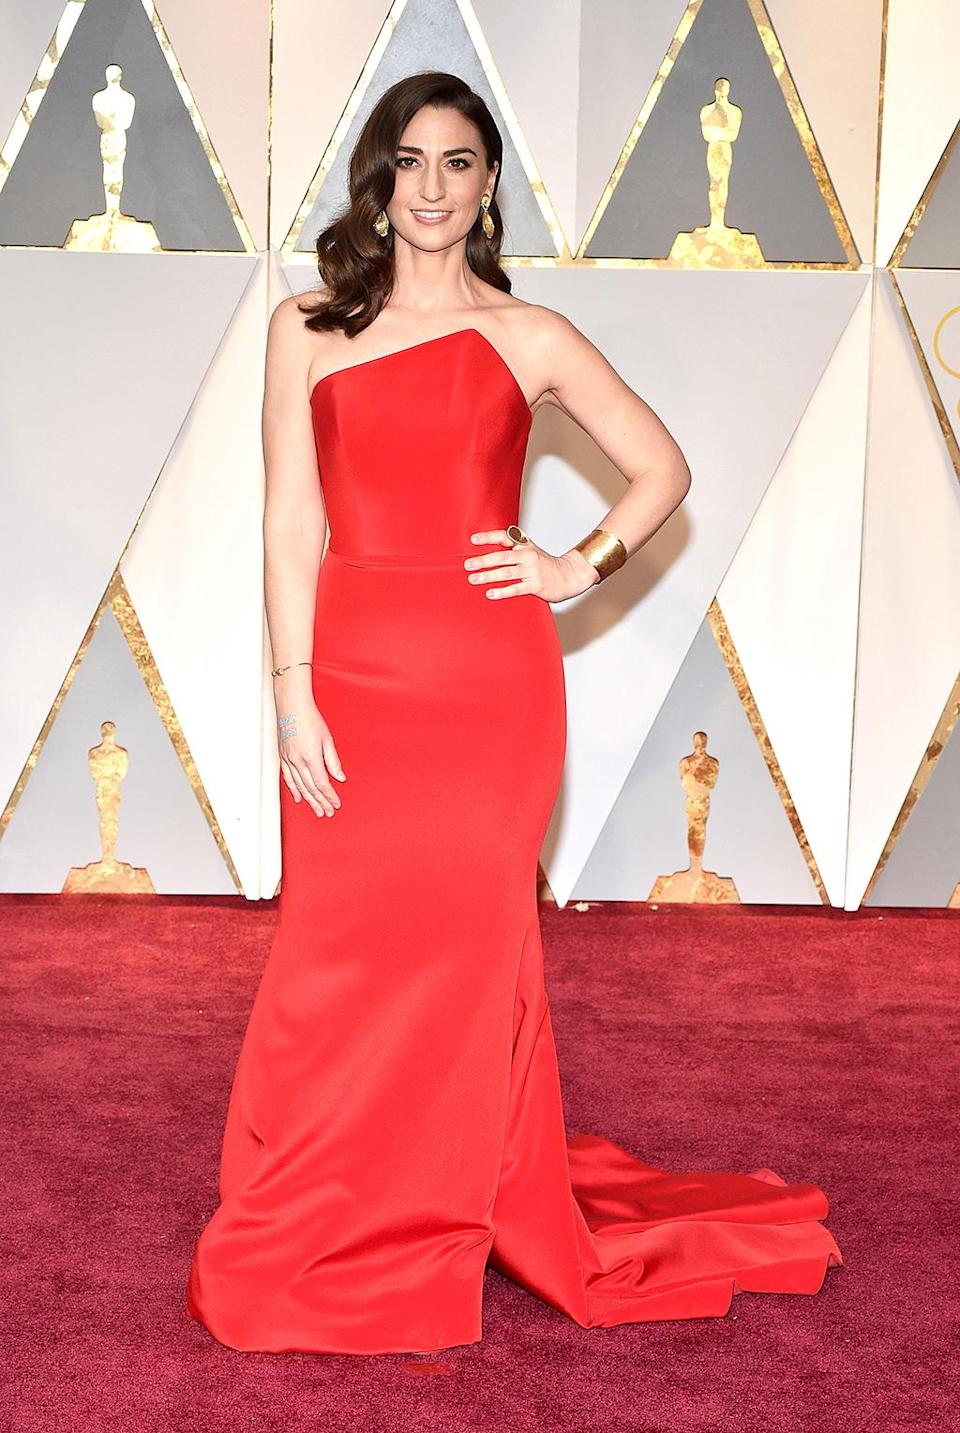 <p>Musician Sara Bareilles attends the 89th Annual Academy Awards at Hollywood & Highland Center on February 26, 2017 in Hollywood, California. (Photo by Kevin Mazur/Getty Images) </p>